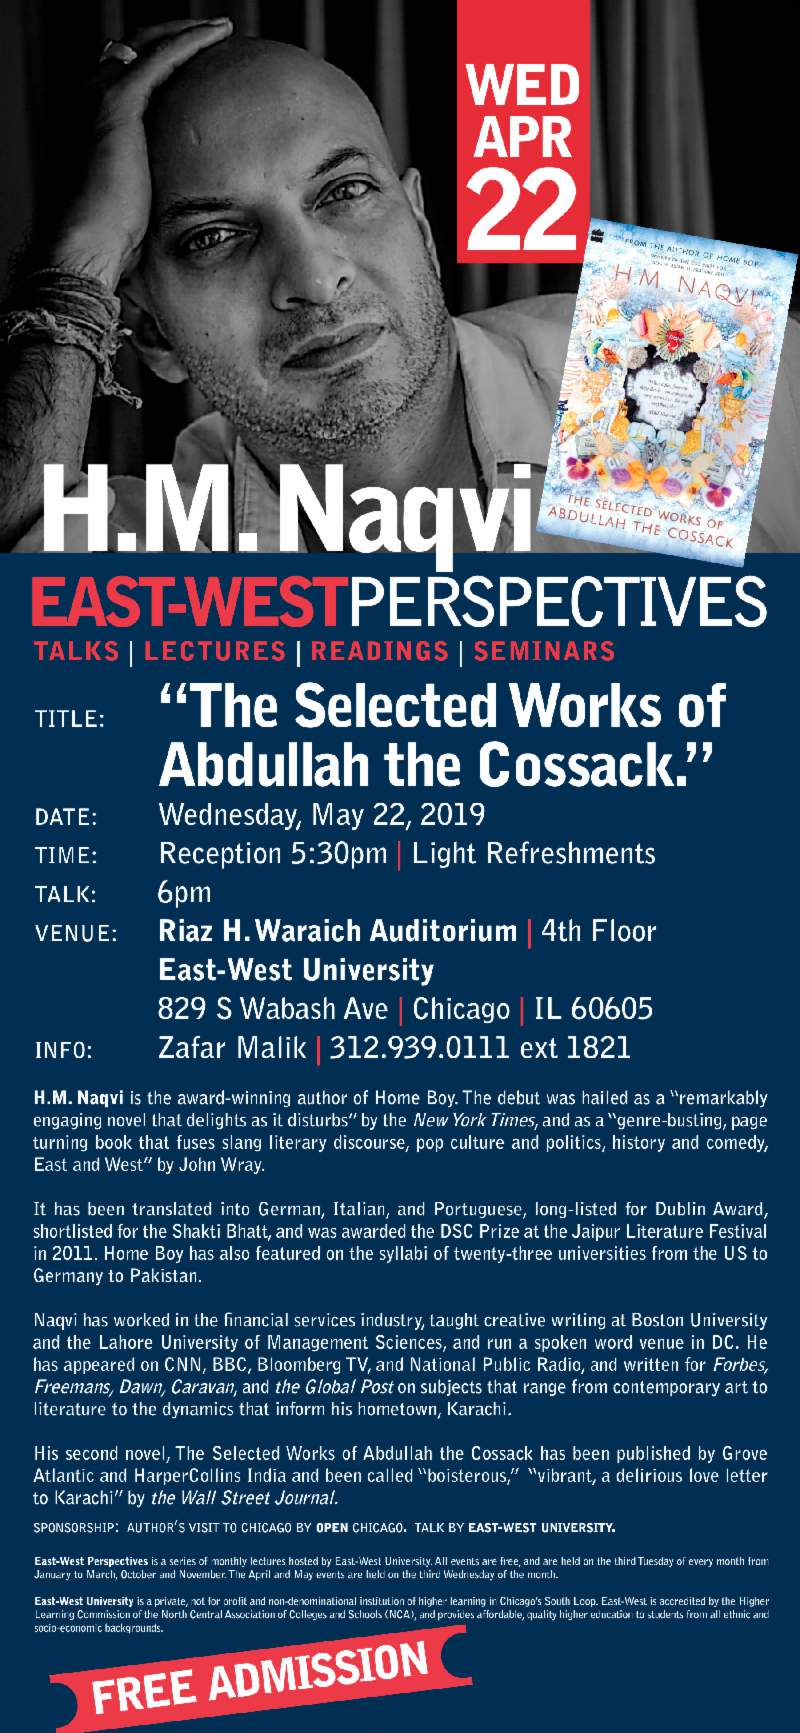 East-West Perspectives: H.M Naqvi